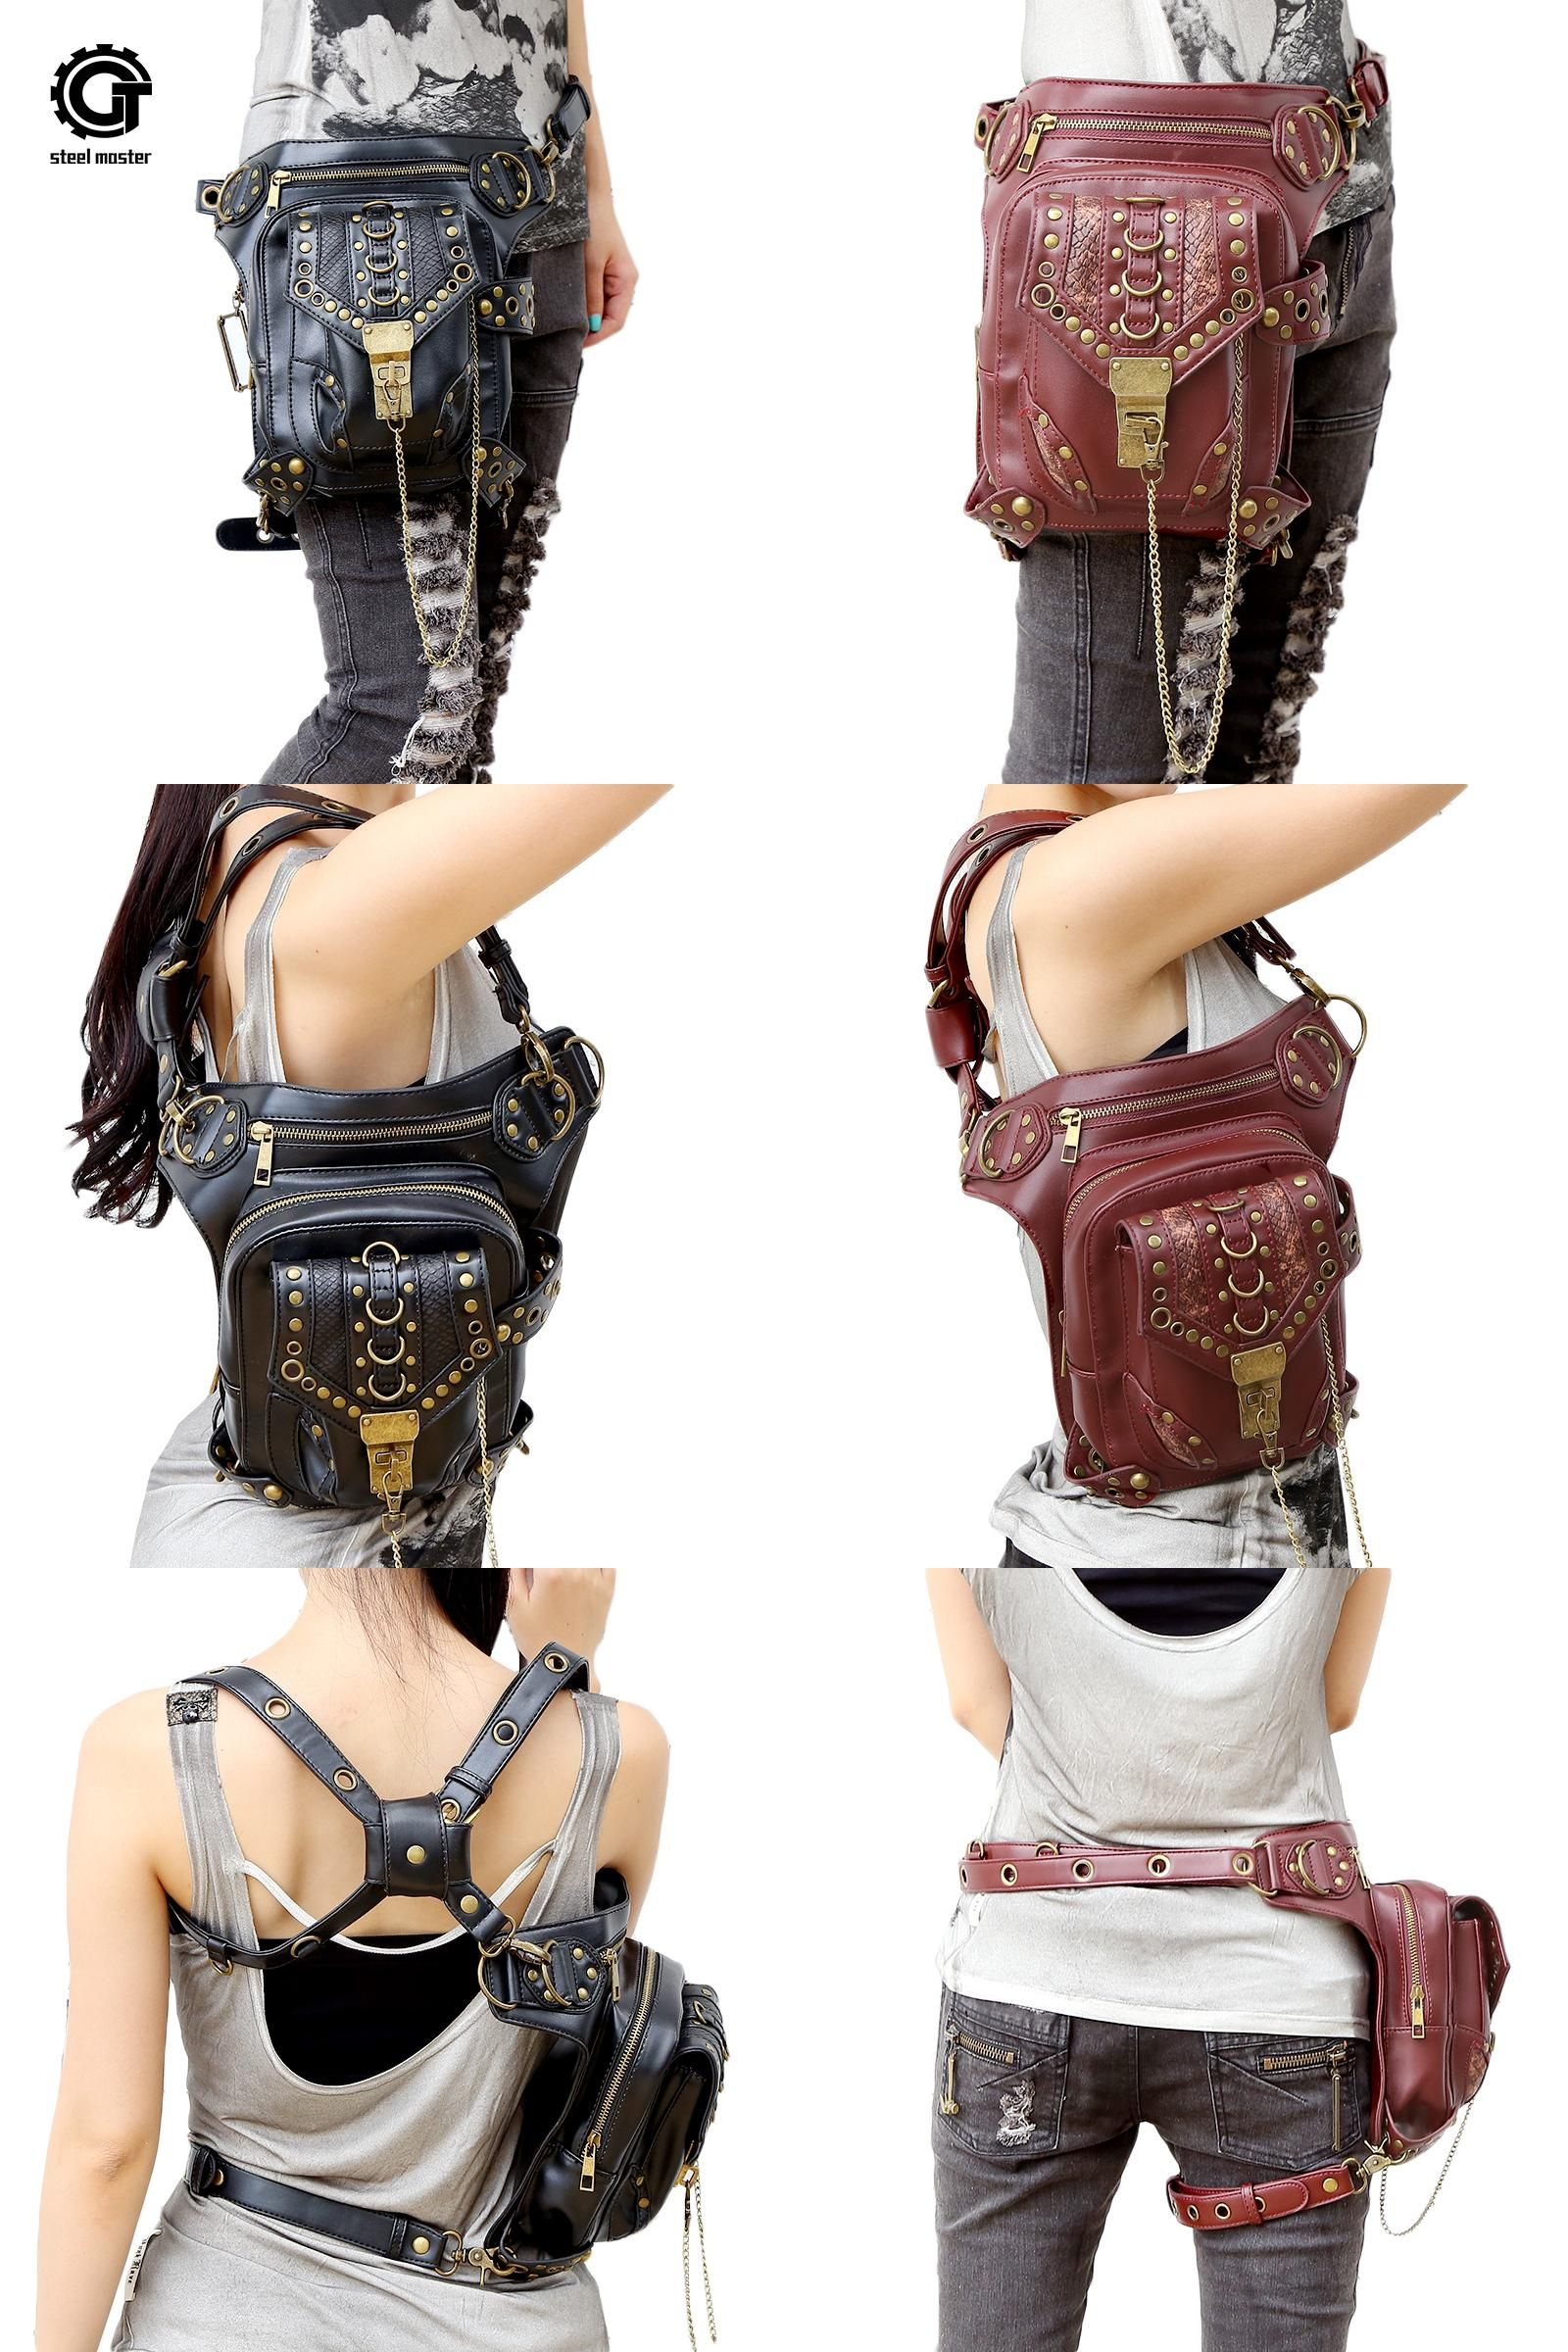 [Visit to Buy] Steampunk Waist Bag Exclusive Retro Rock Gothic Bag Packs Shoulder Bag Vintage Men Women Leather Leg Bag 2017 #Advertisement